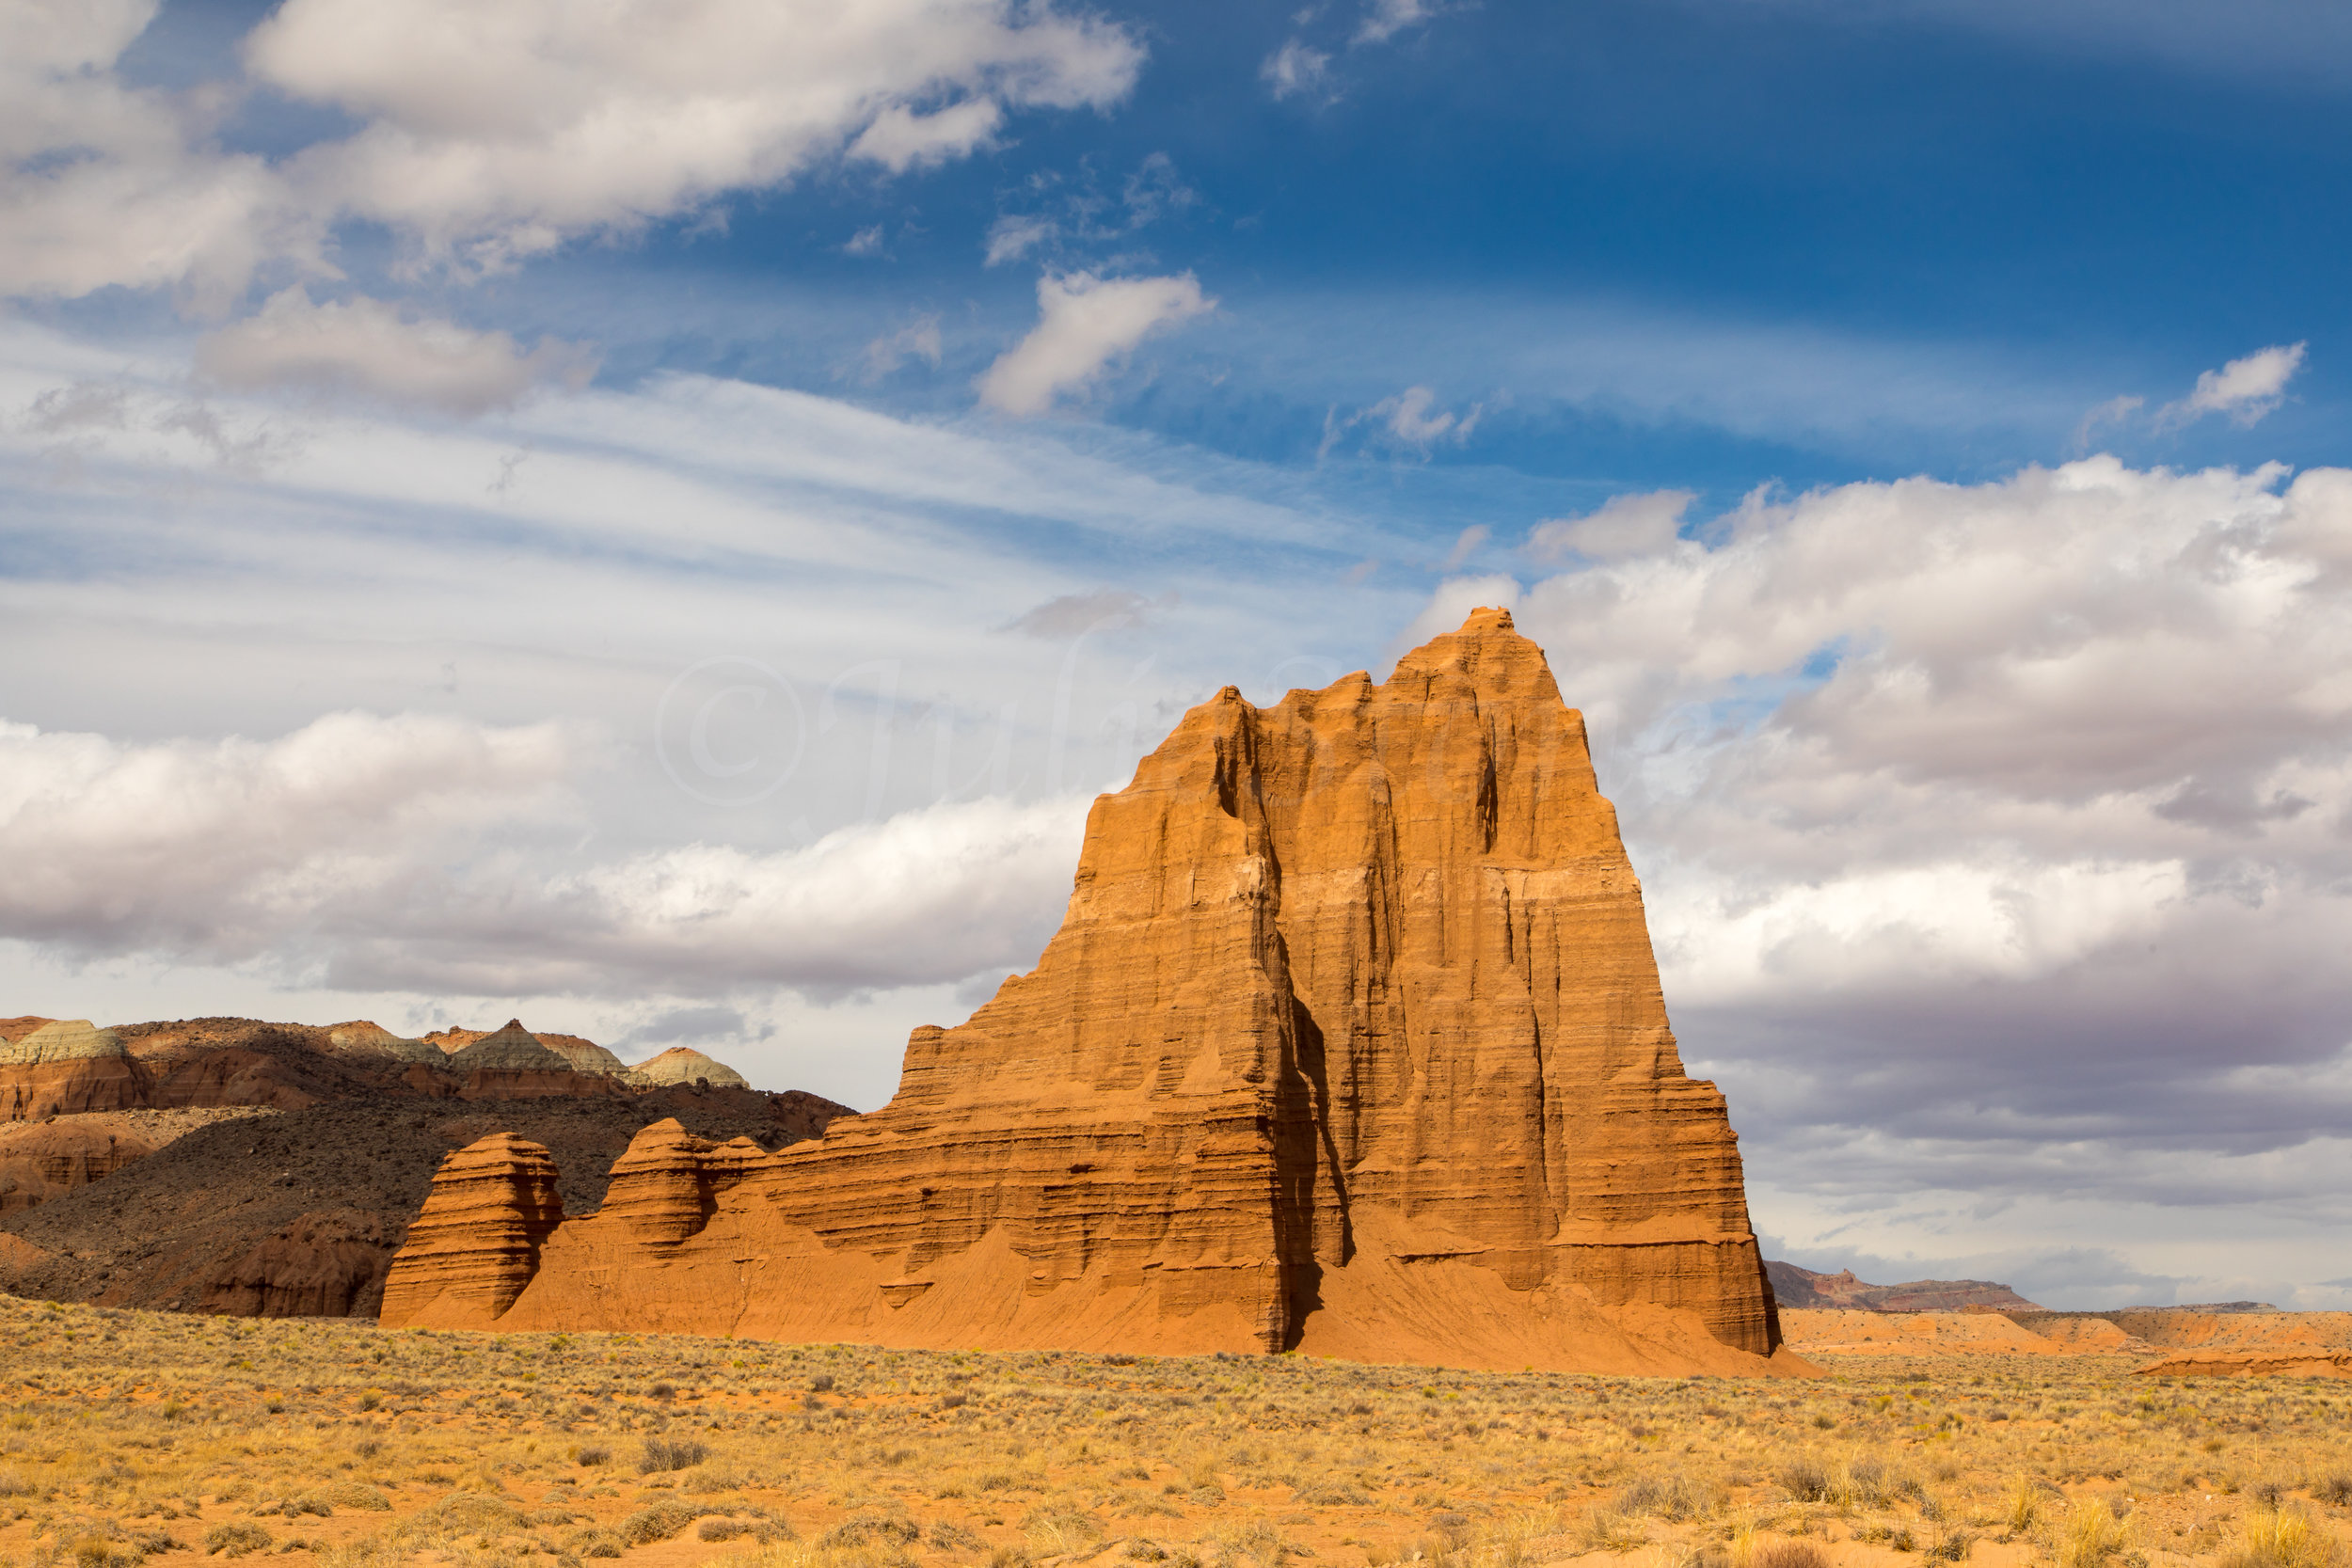 Capitol Reef National Park, Image # 2102